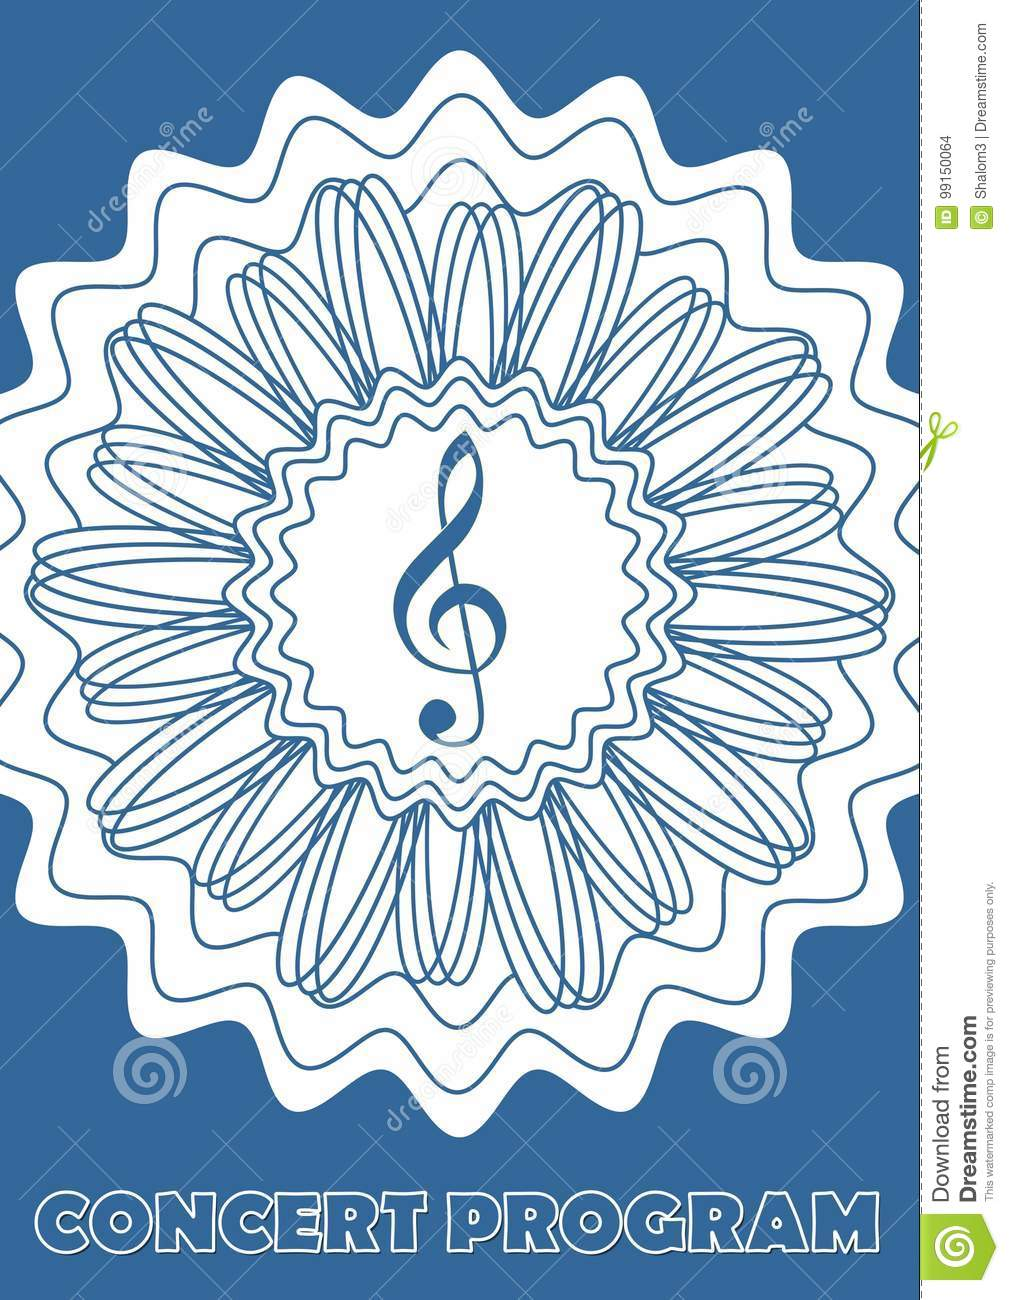 concert program cover template with treble clef in abstract star